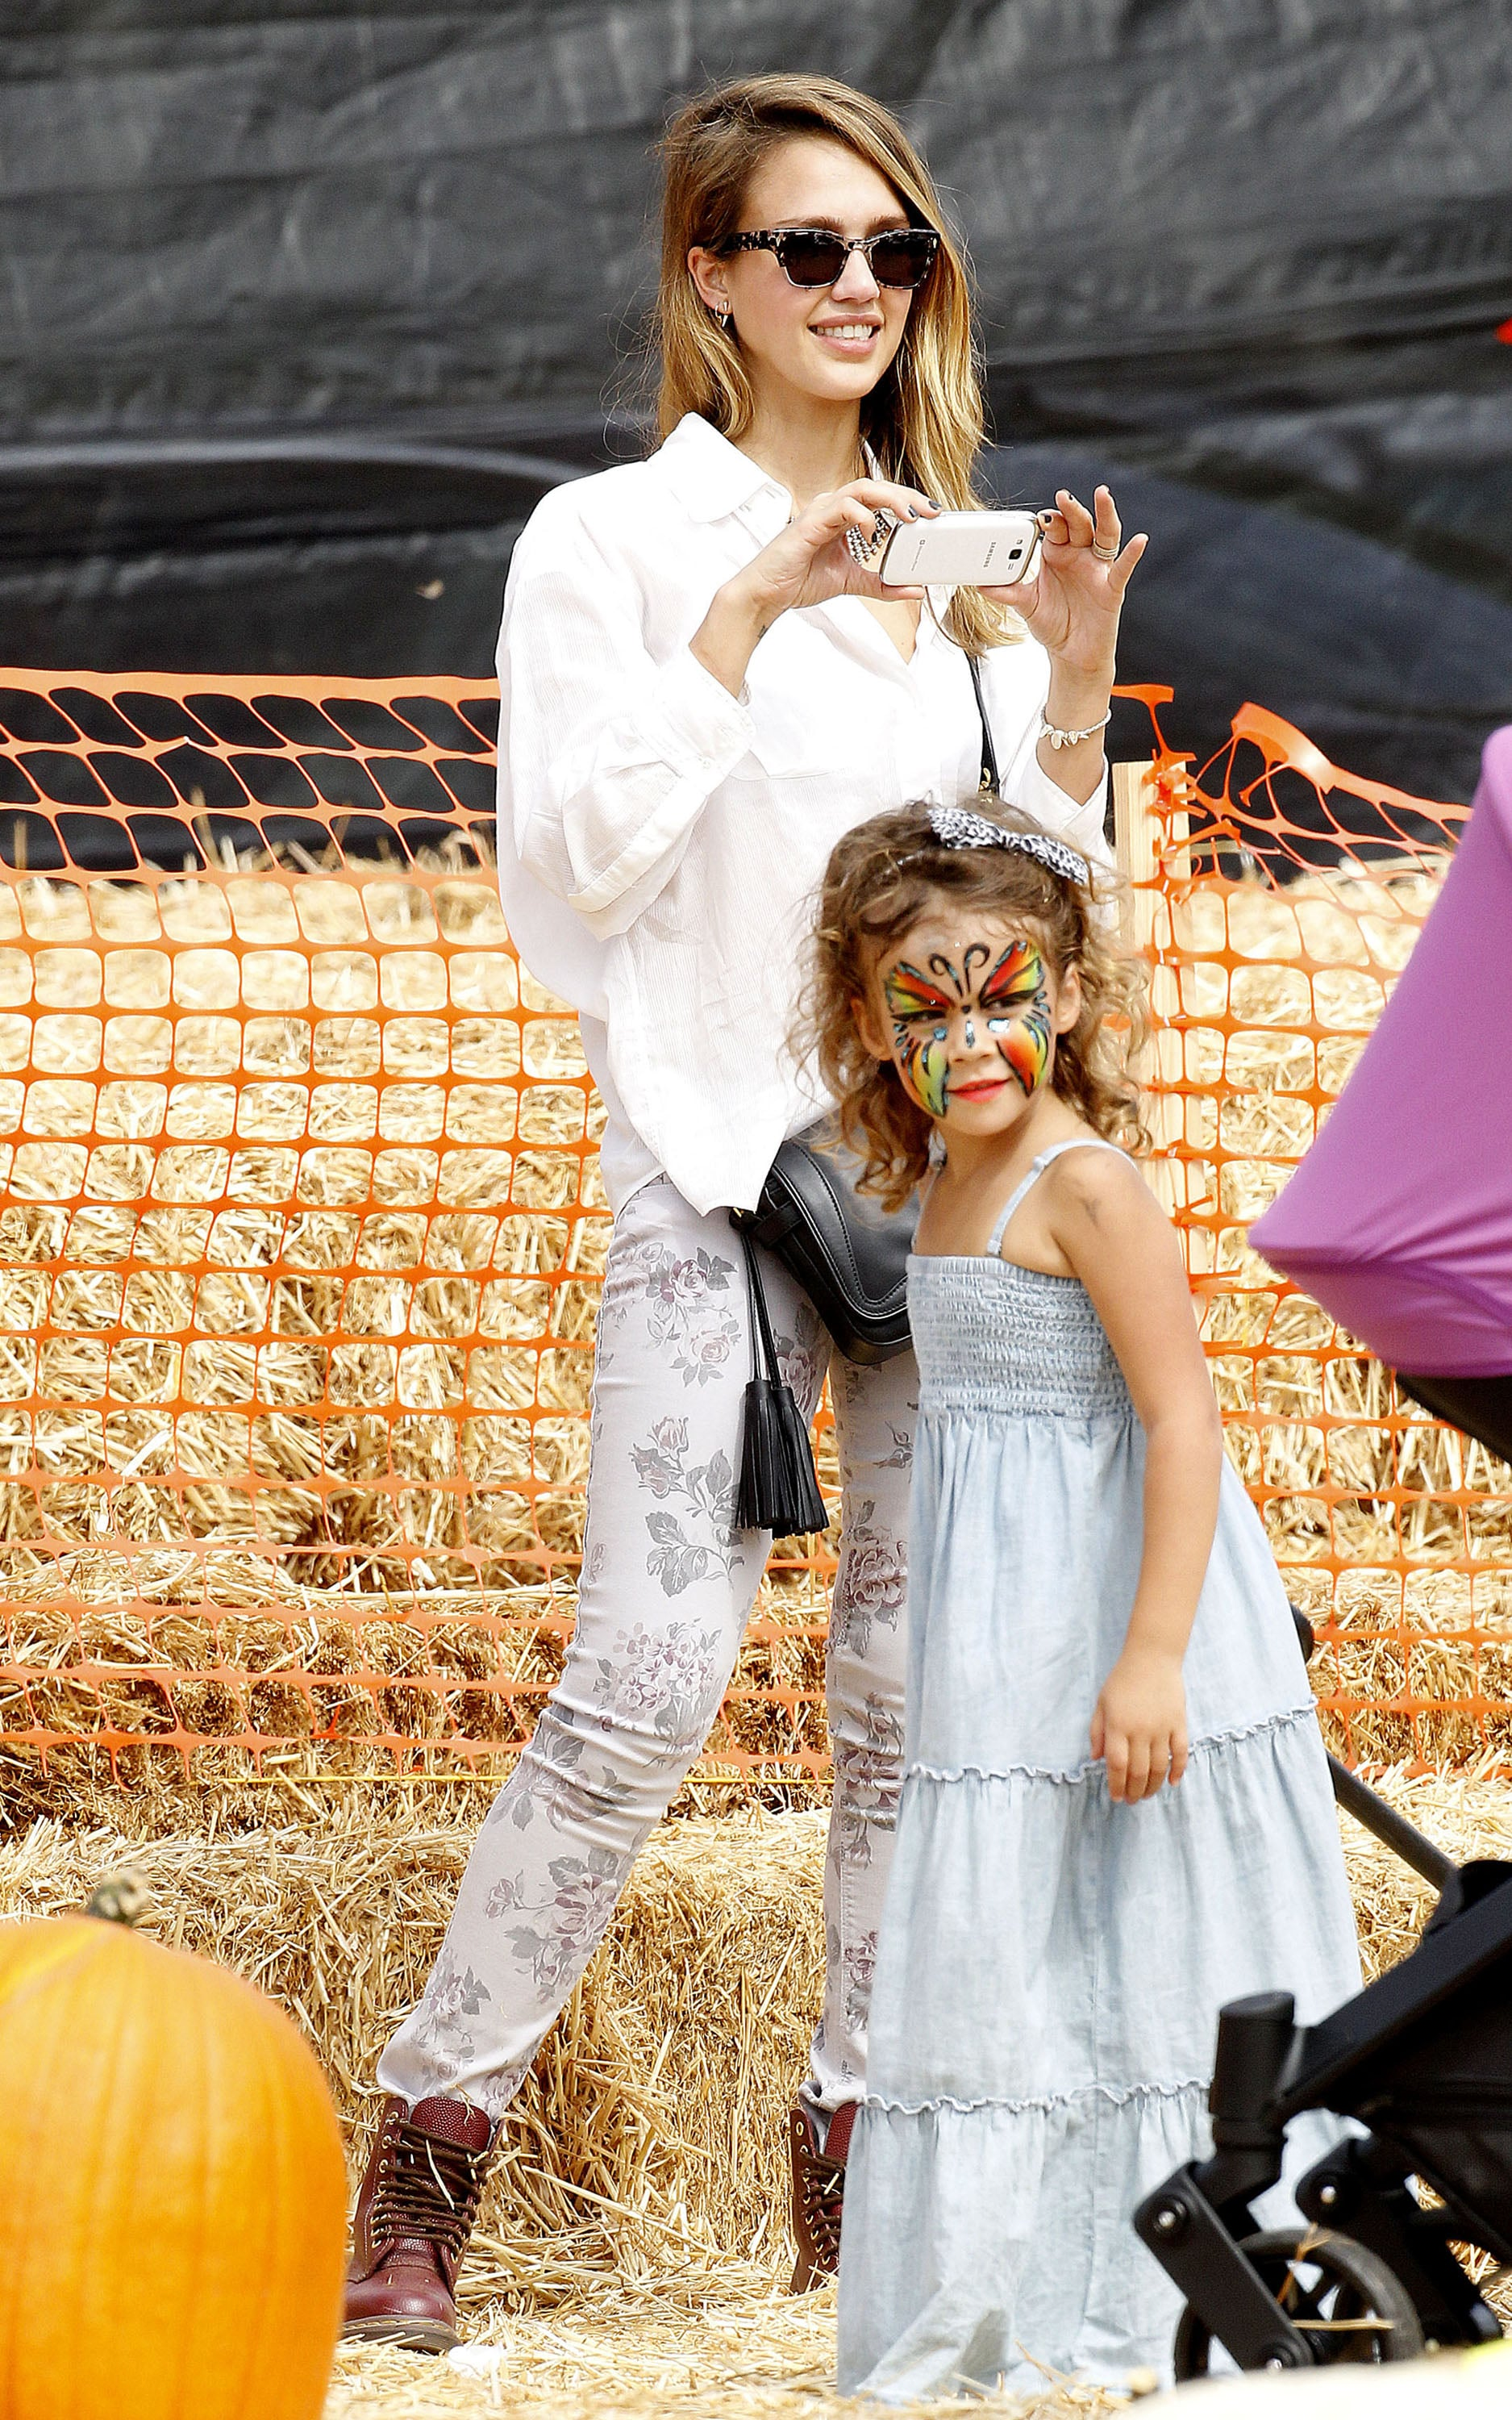 Jessica Alba snapped pictures of her family at Mr. Bones Pumpkin Patch in LA.